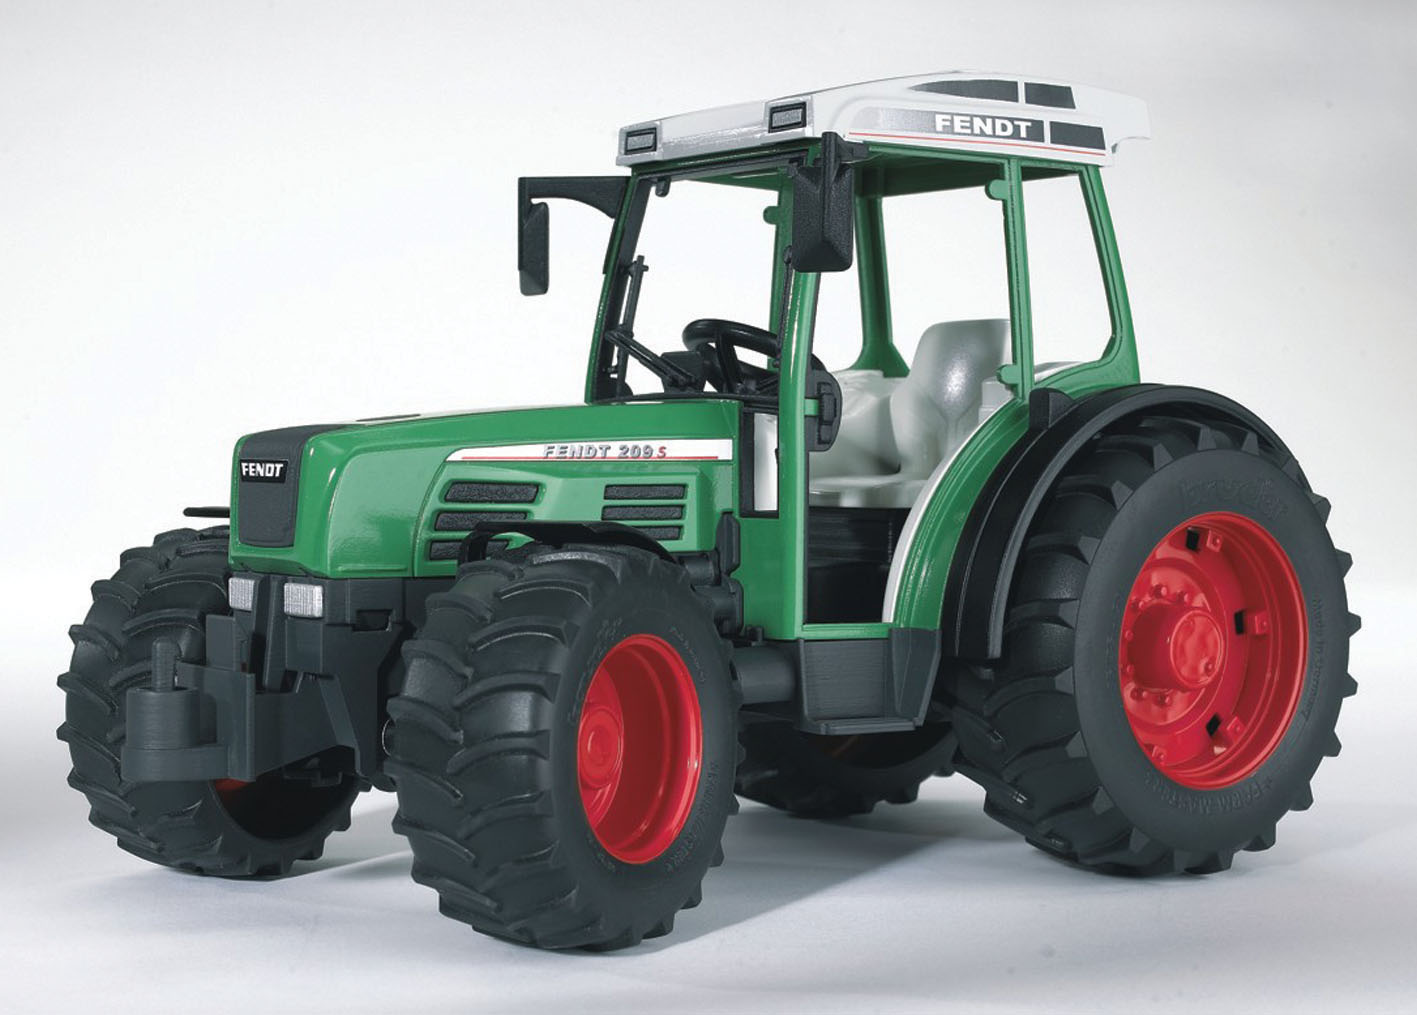 TRATTORE FENDT 209 S